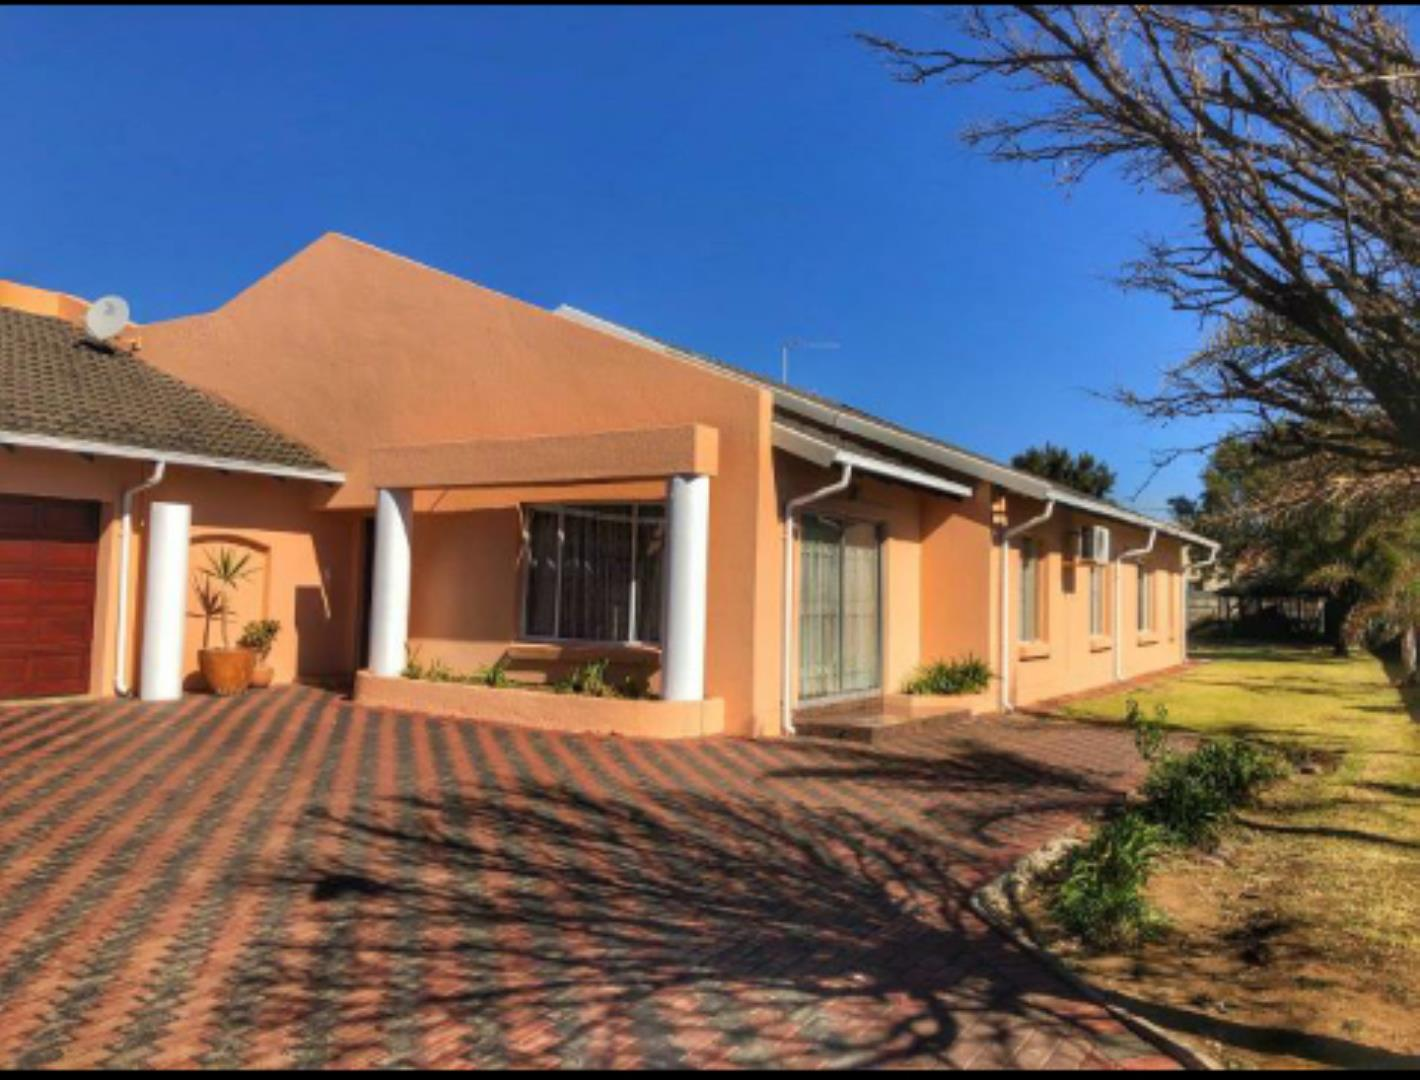 4 Bedroom House for Sale in Mayberry Park, Alberton - Gauteng